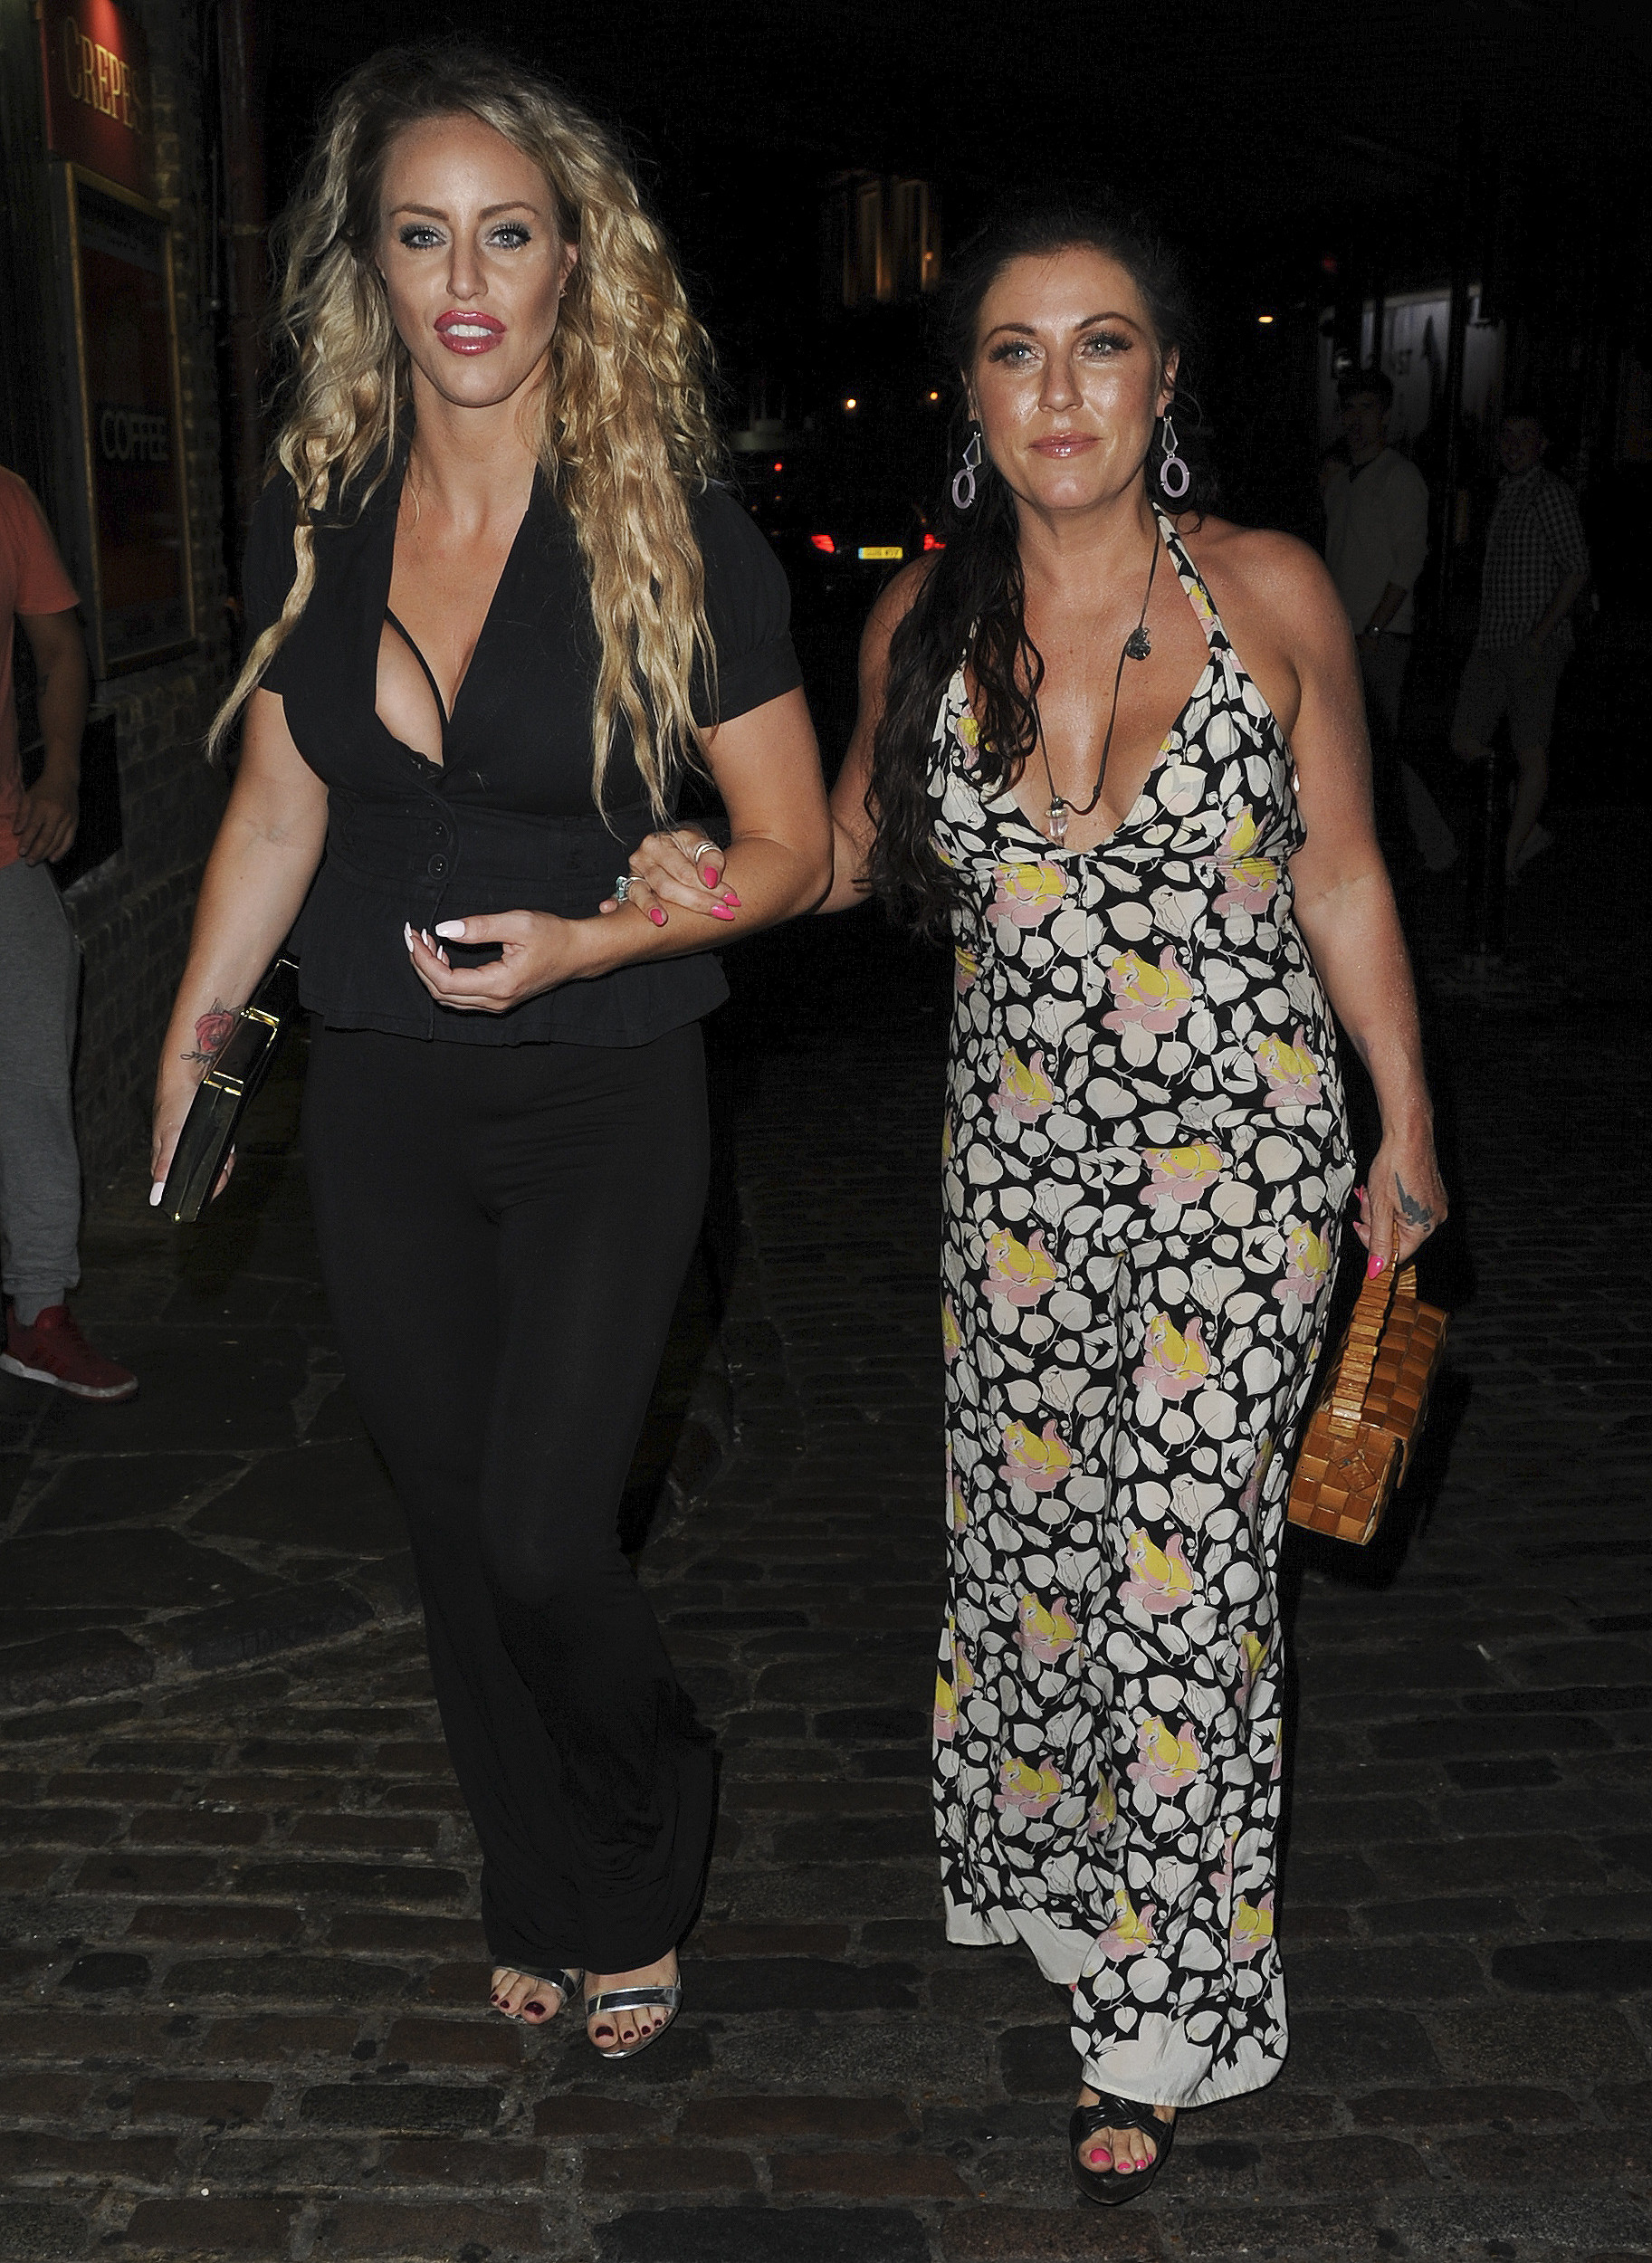 She and half-sister Danielle Mason had been celebrating the end of their ten-year feud